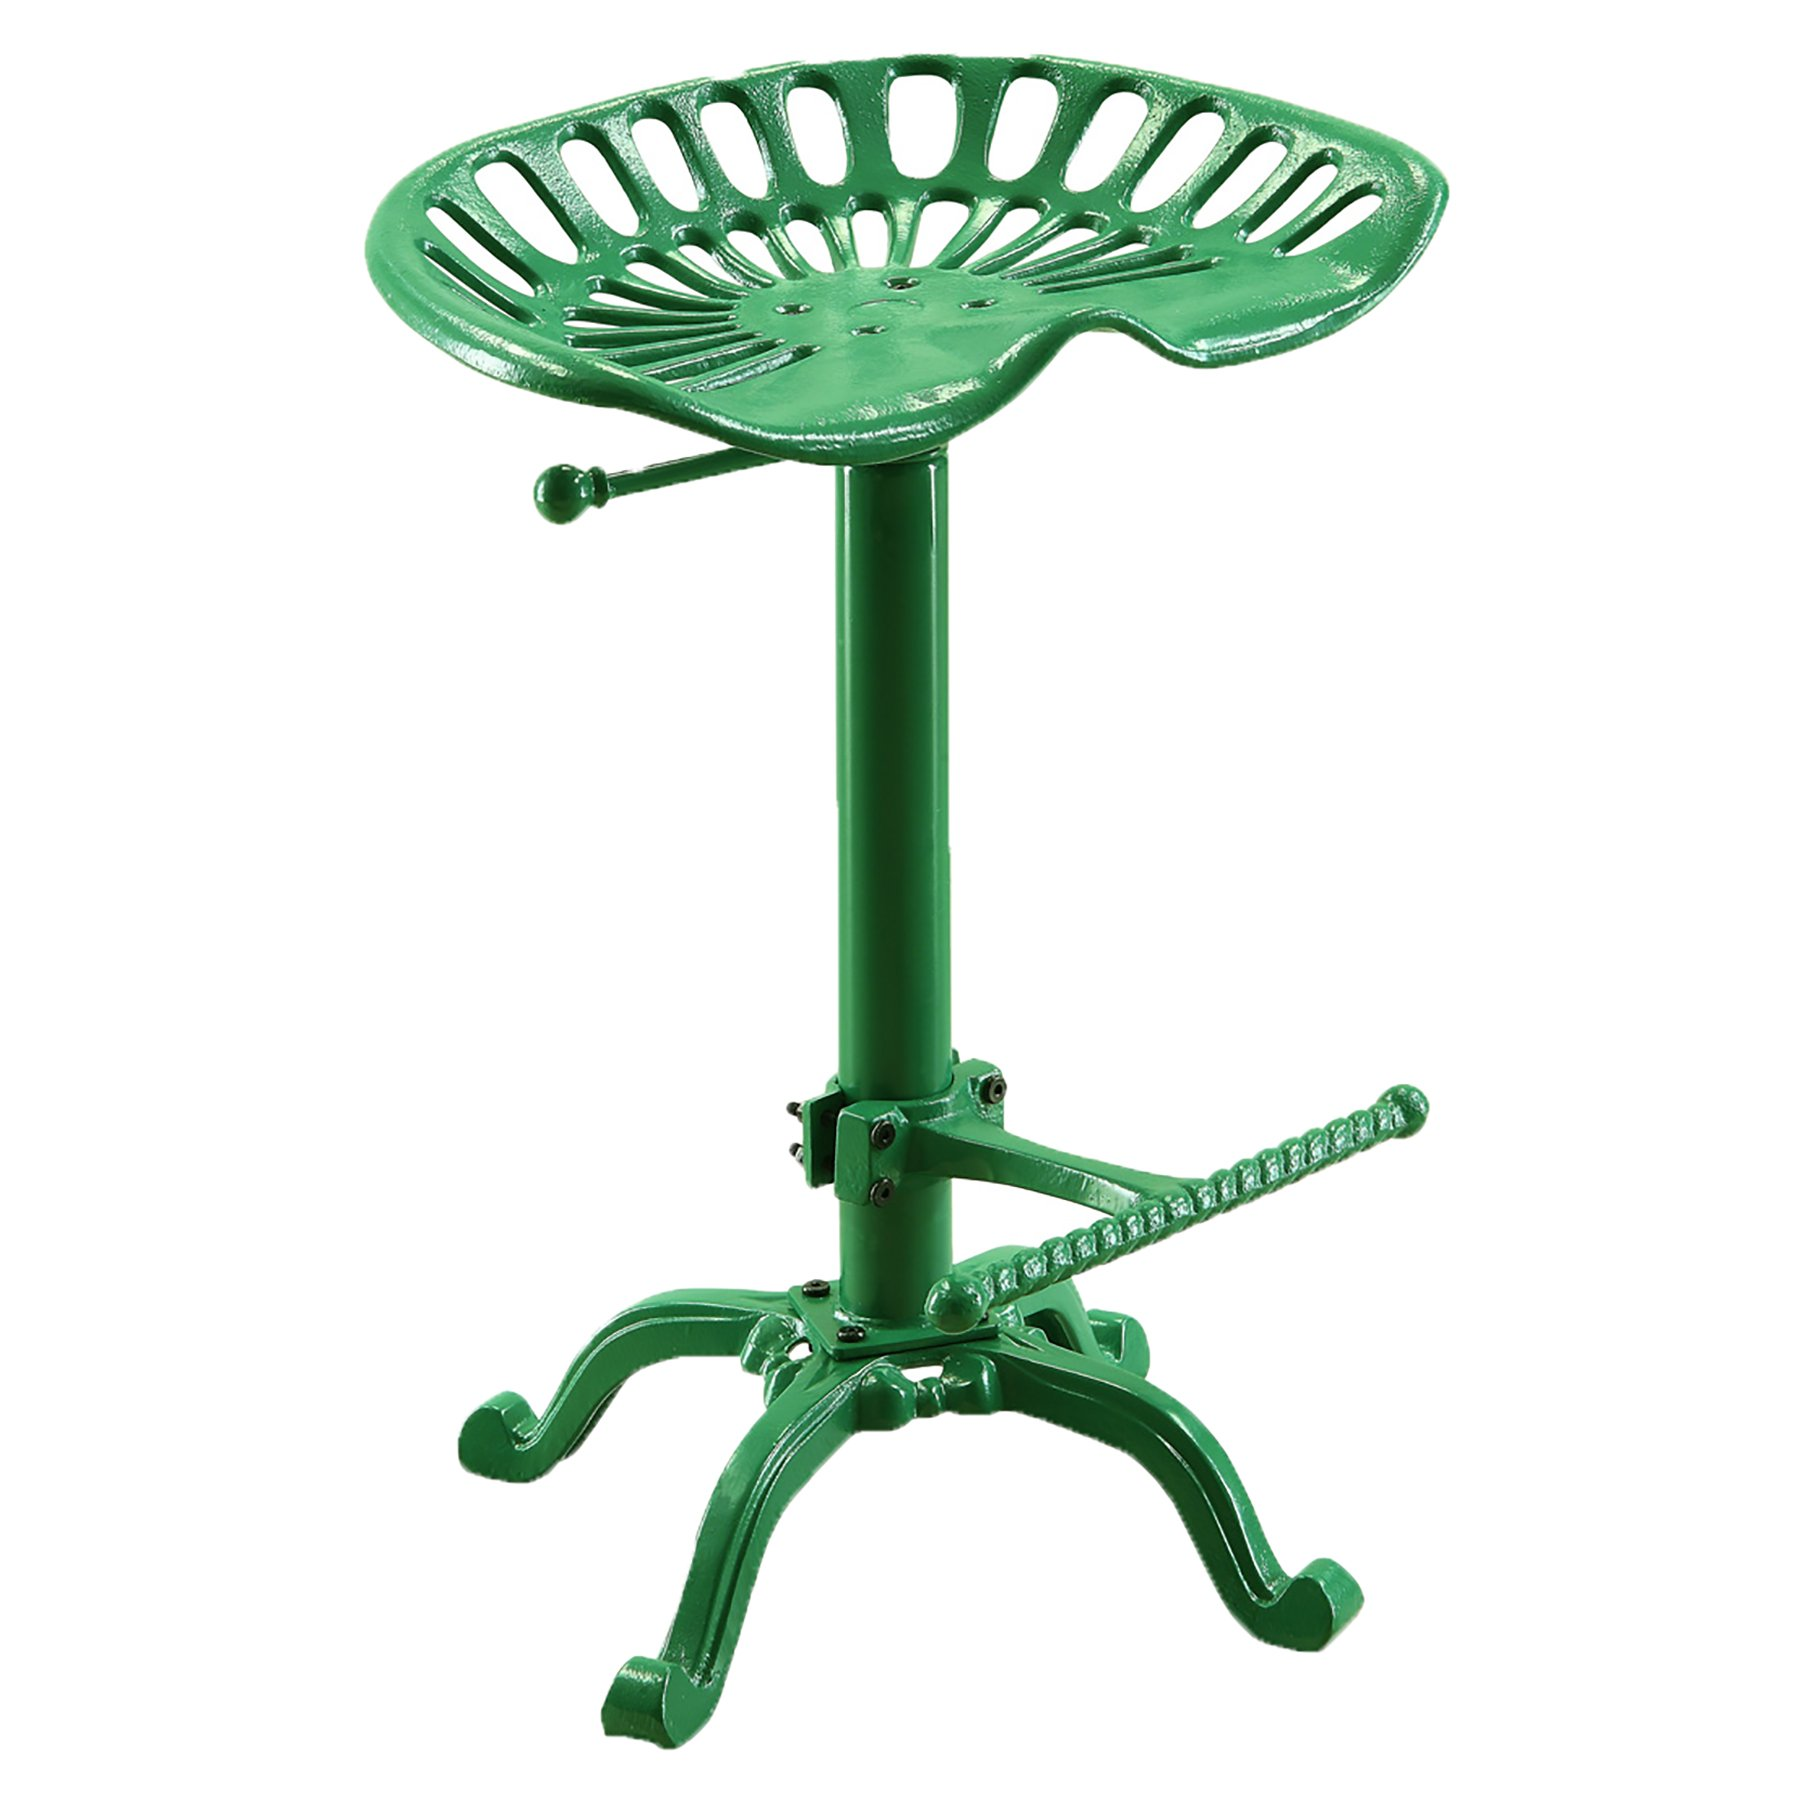 Carolina Chair and Table Adjustable Seat Stool, Novelty, Tractor Green by Carolina Chair & Table